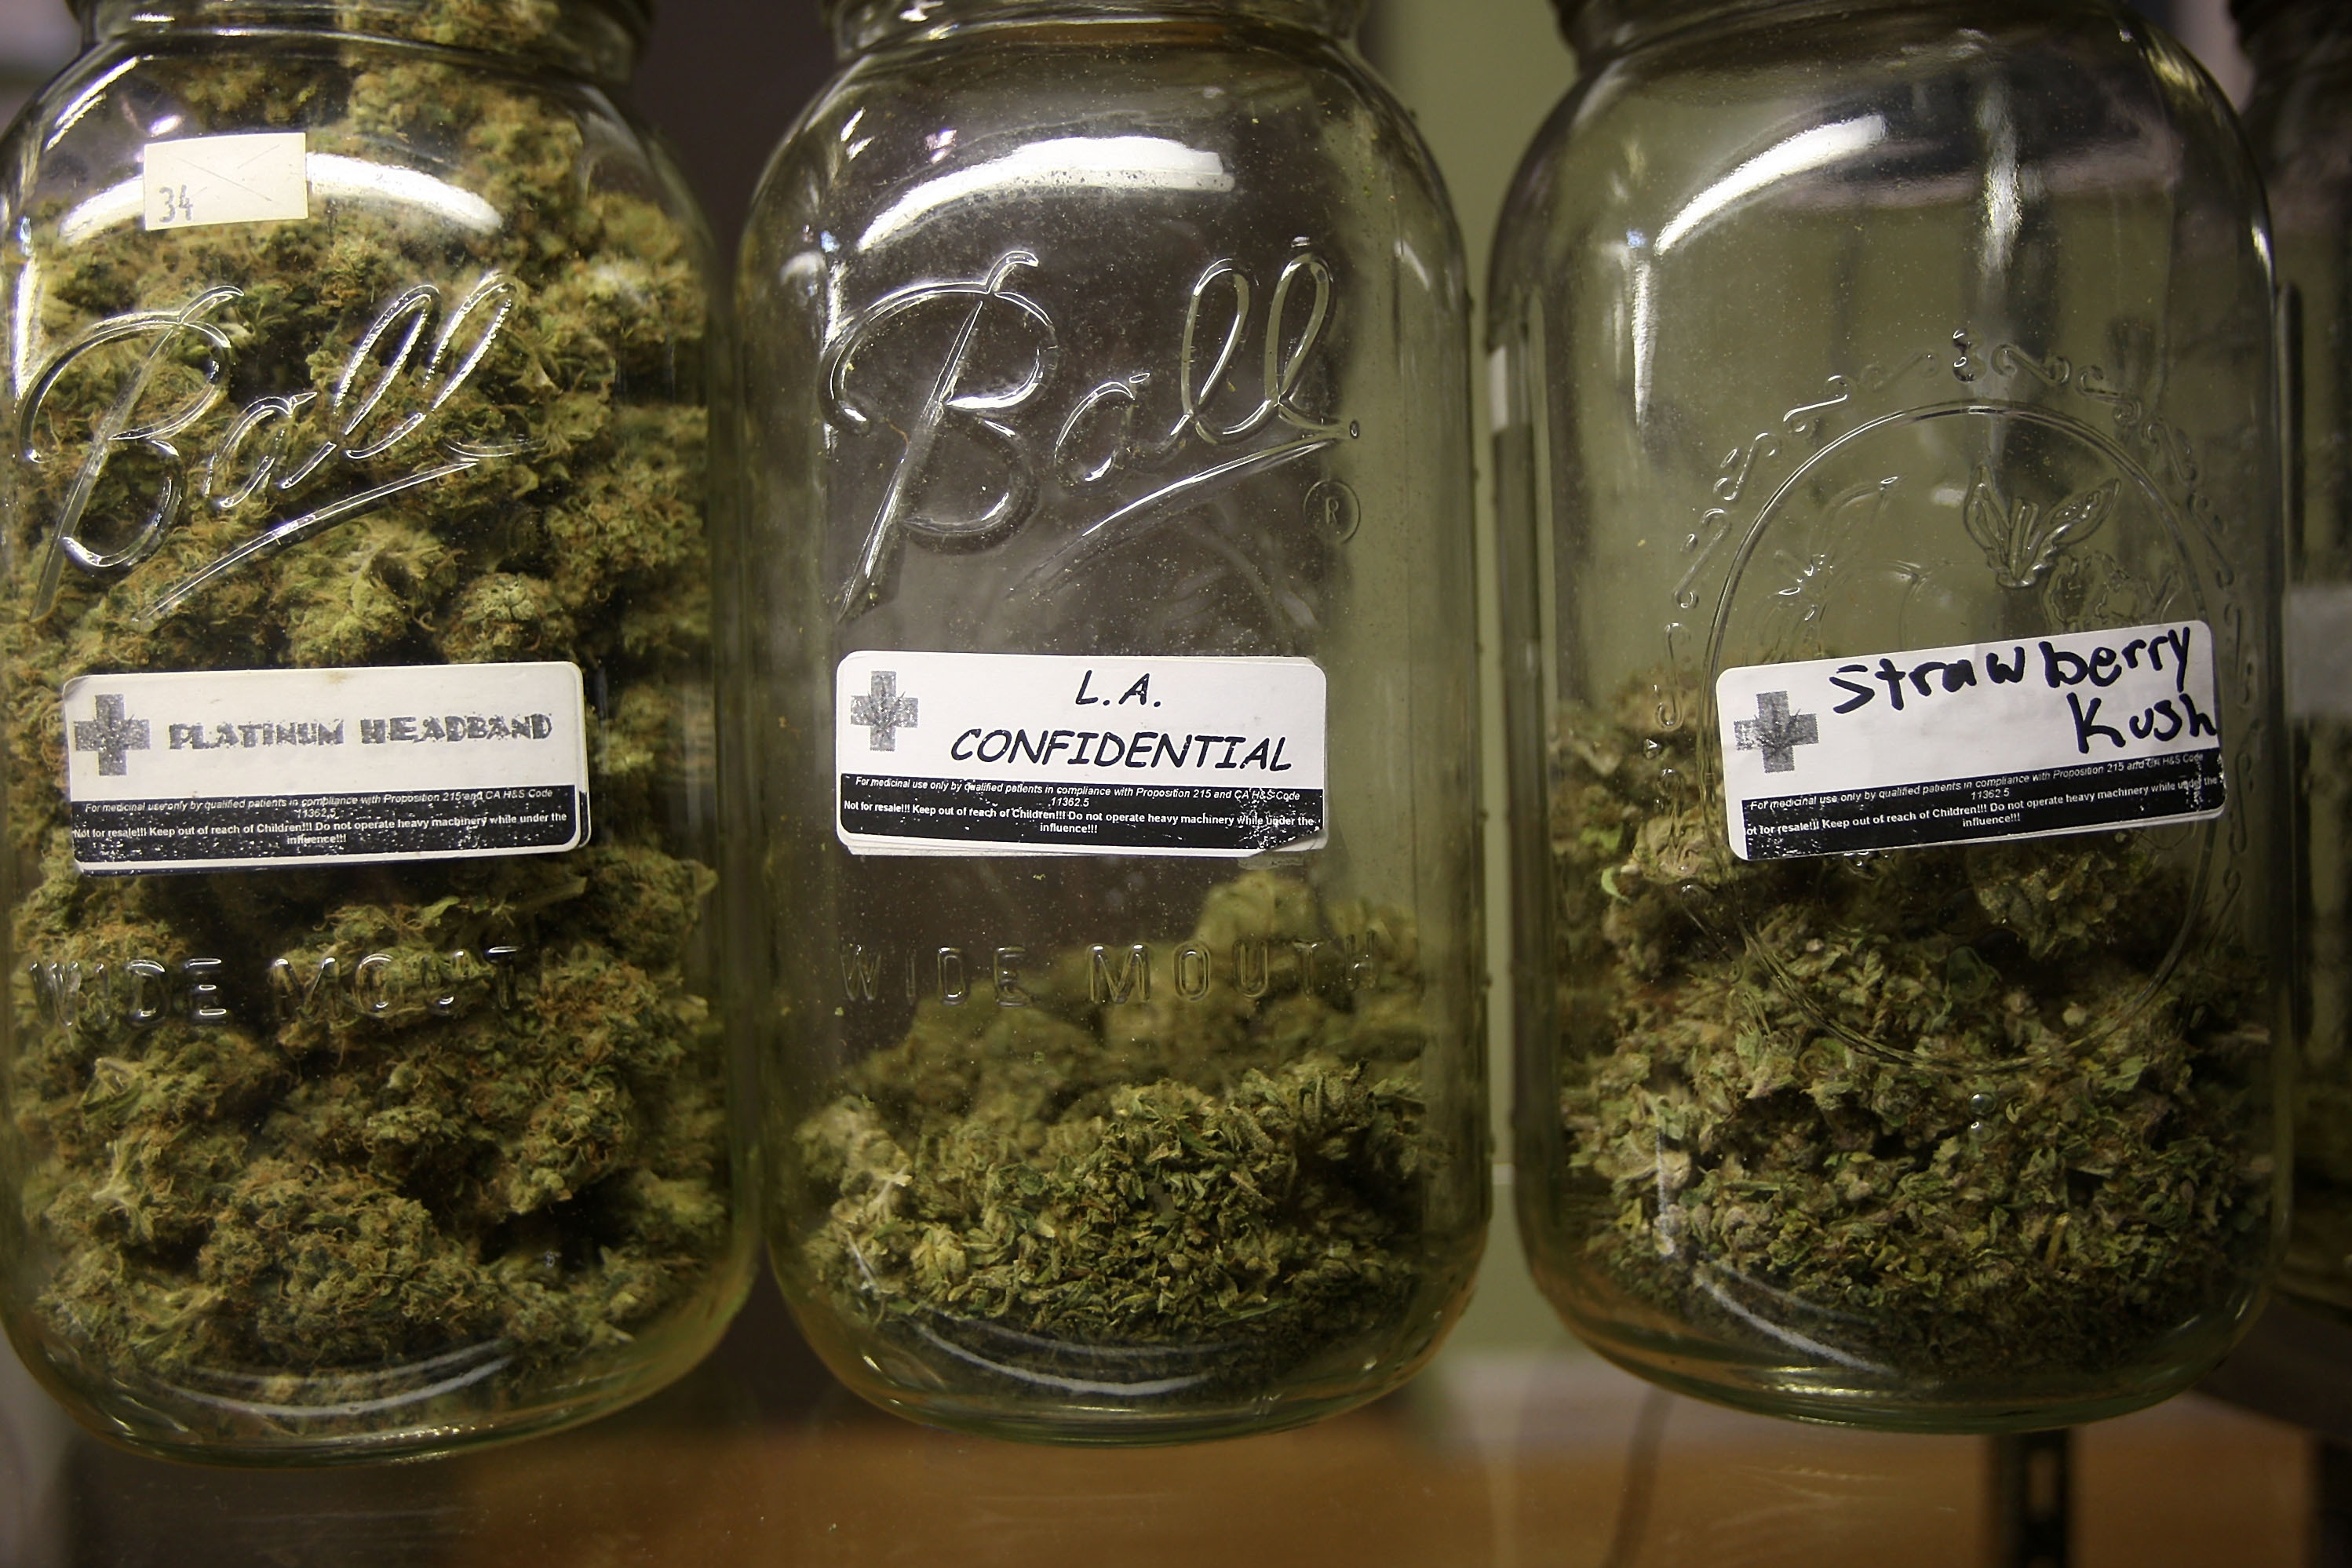 Legalize All Drugs? The 'Risks Are Tremendous' Without Defining The Problem